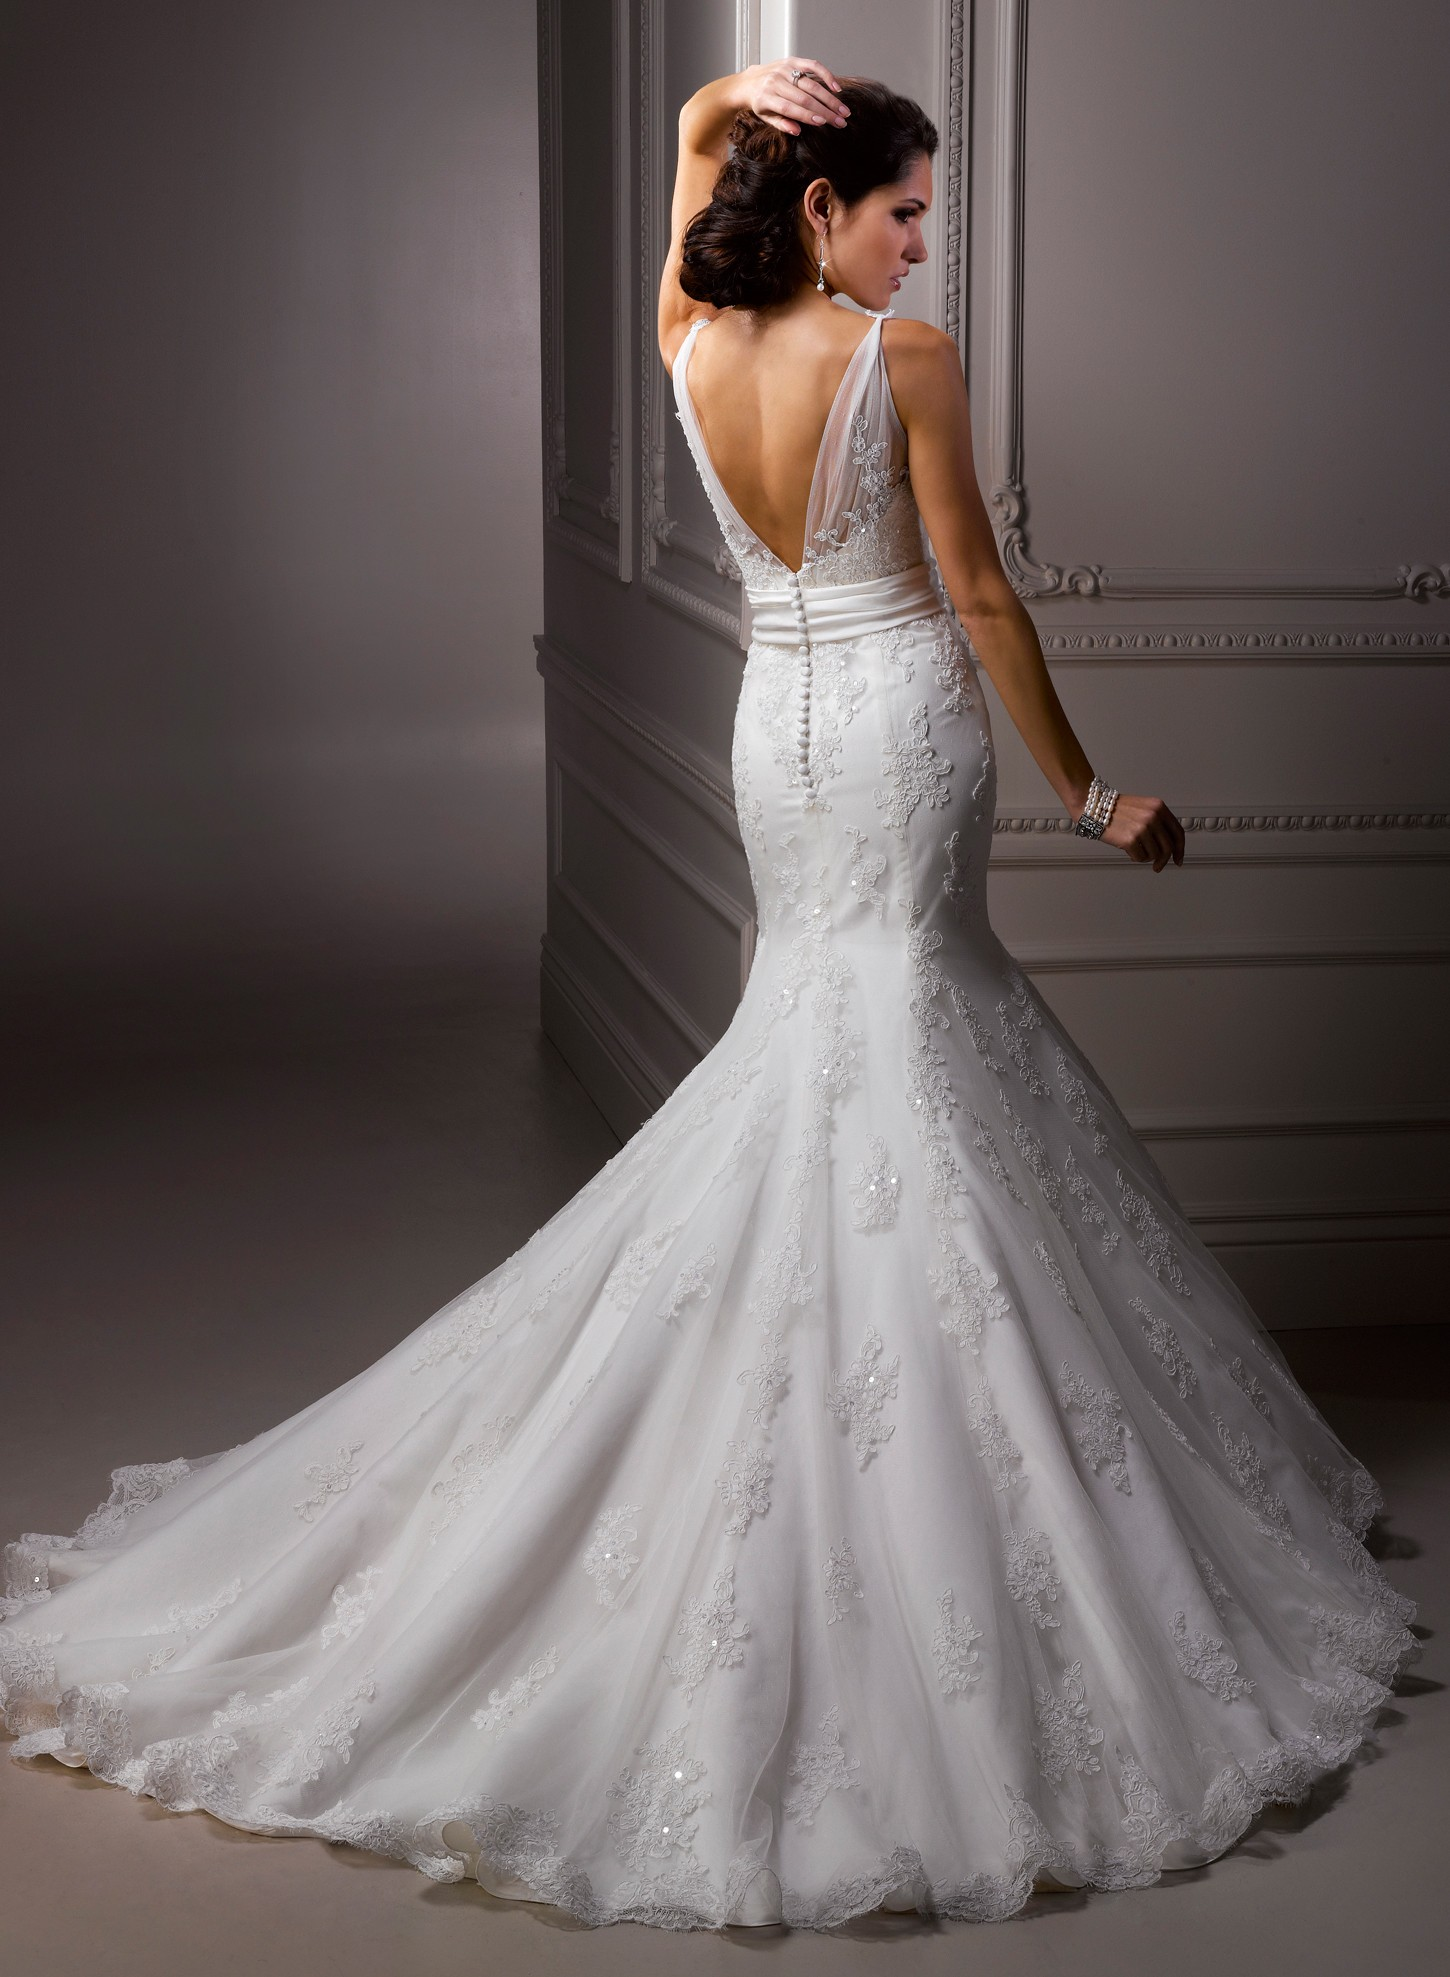 Amazing Mermaid Wedding Dresses 2013 - Fashion Diva Design